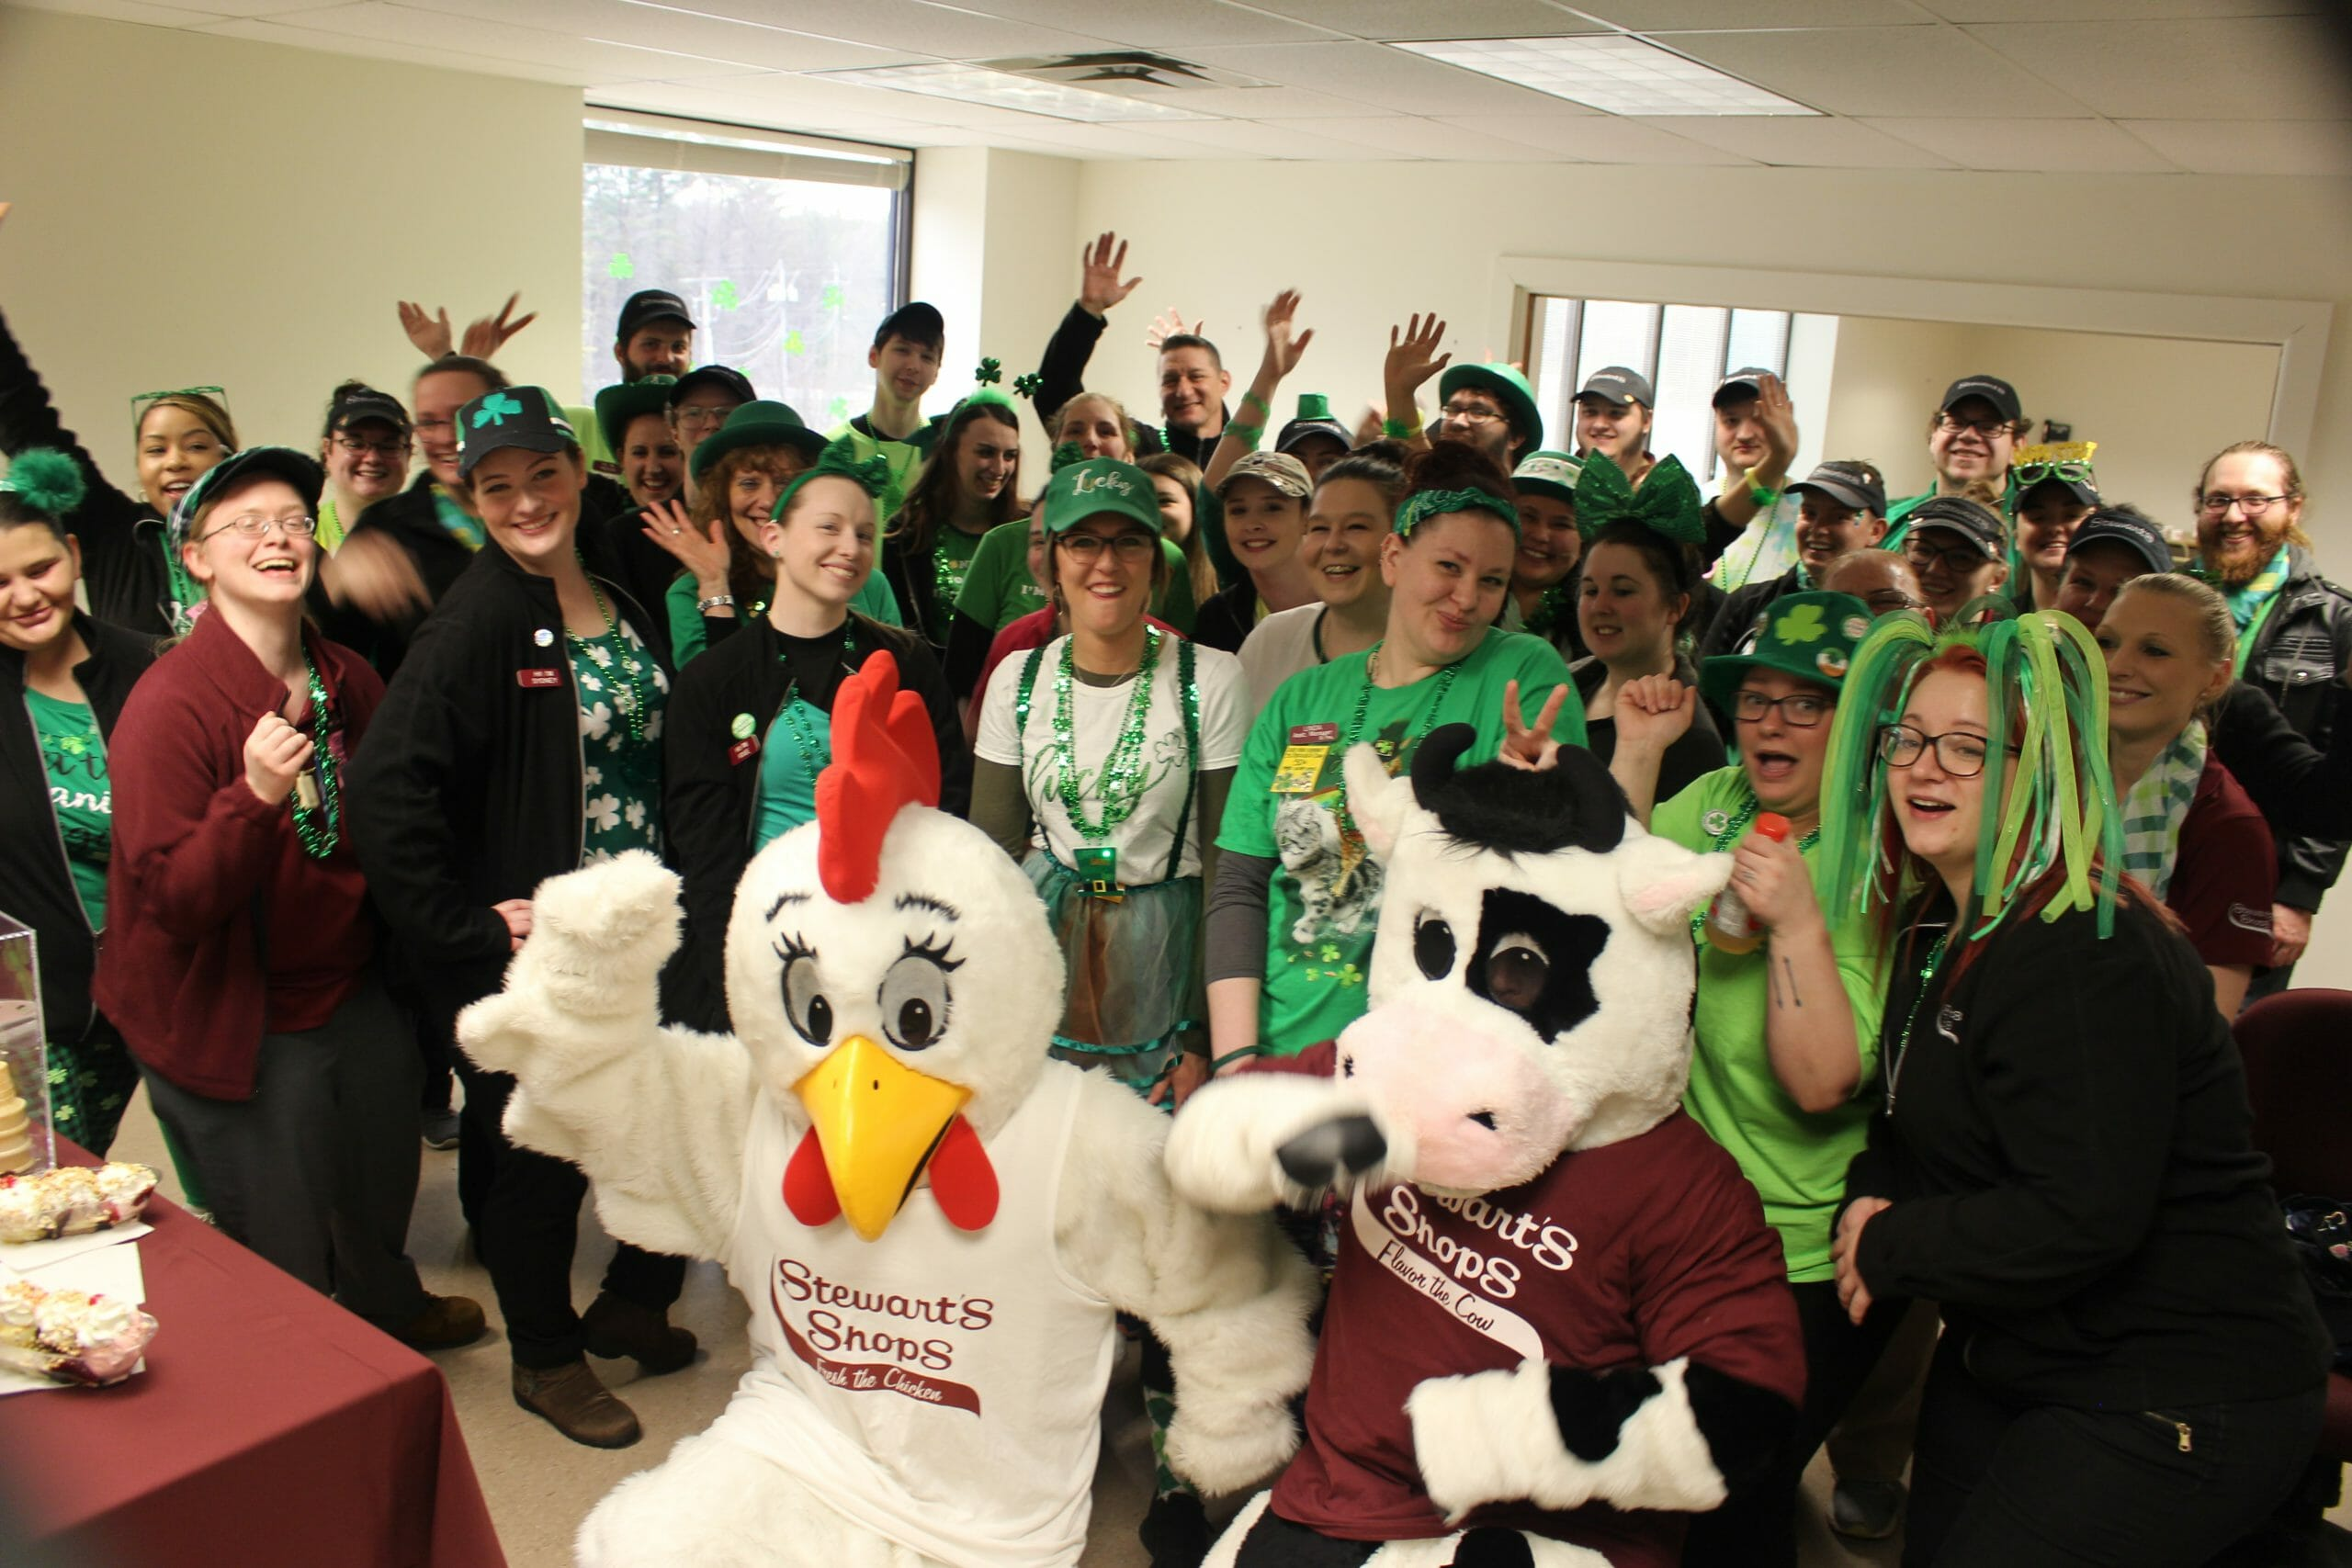 Group of Stewarts Partners and the mascots dressed in green